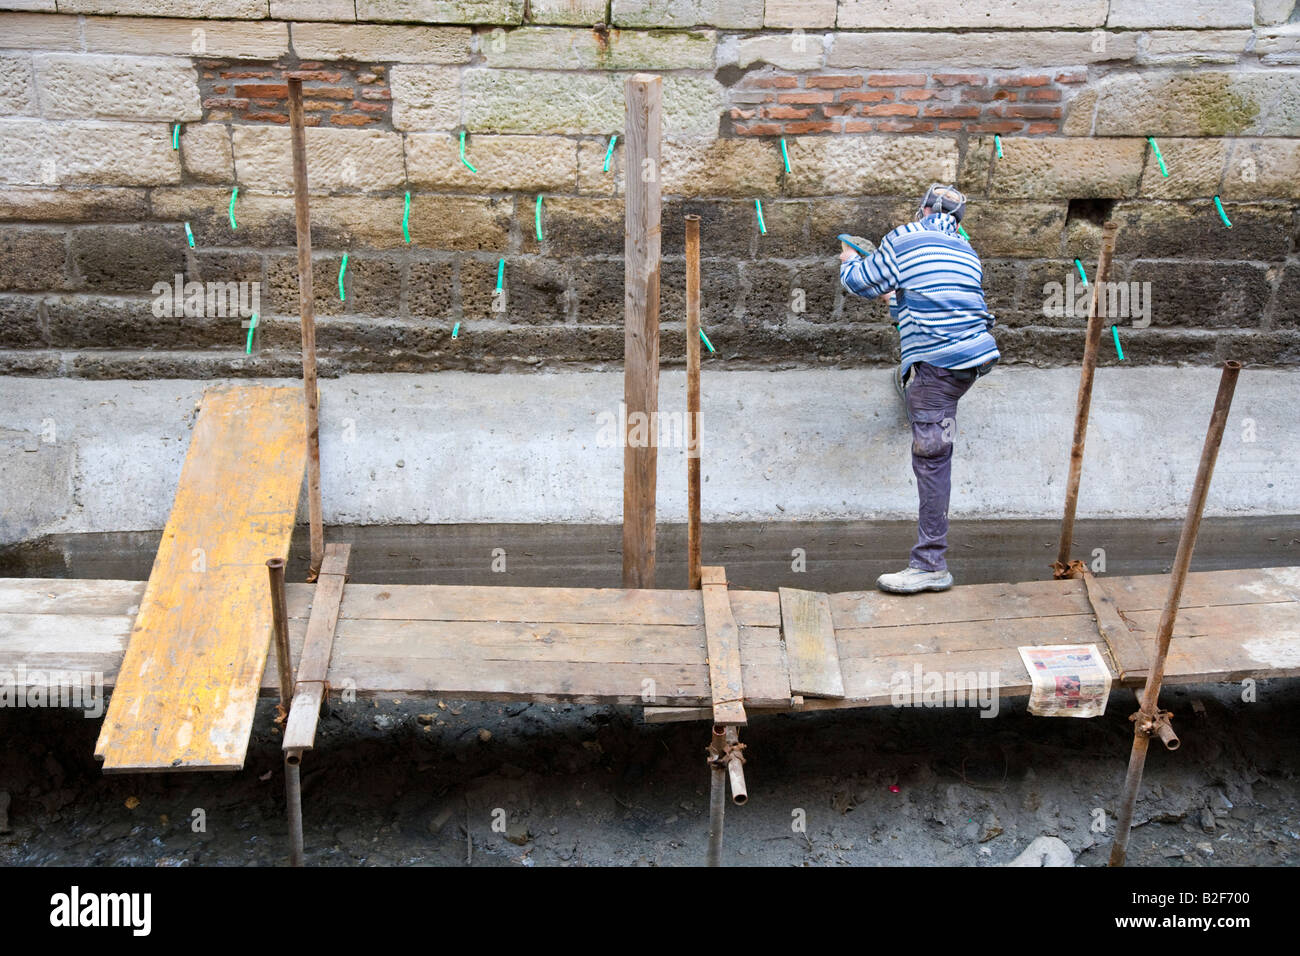 Canal repair works to drained canals Venice Italy - Stock Image